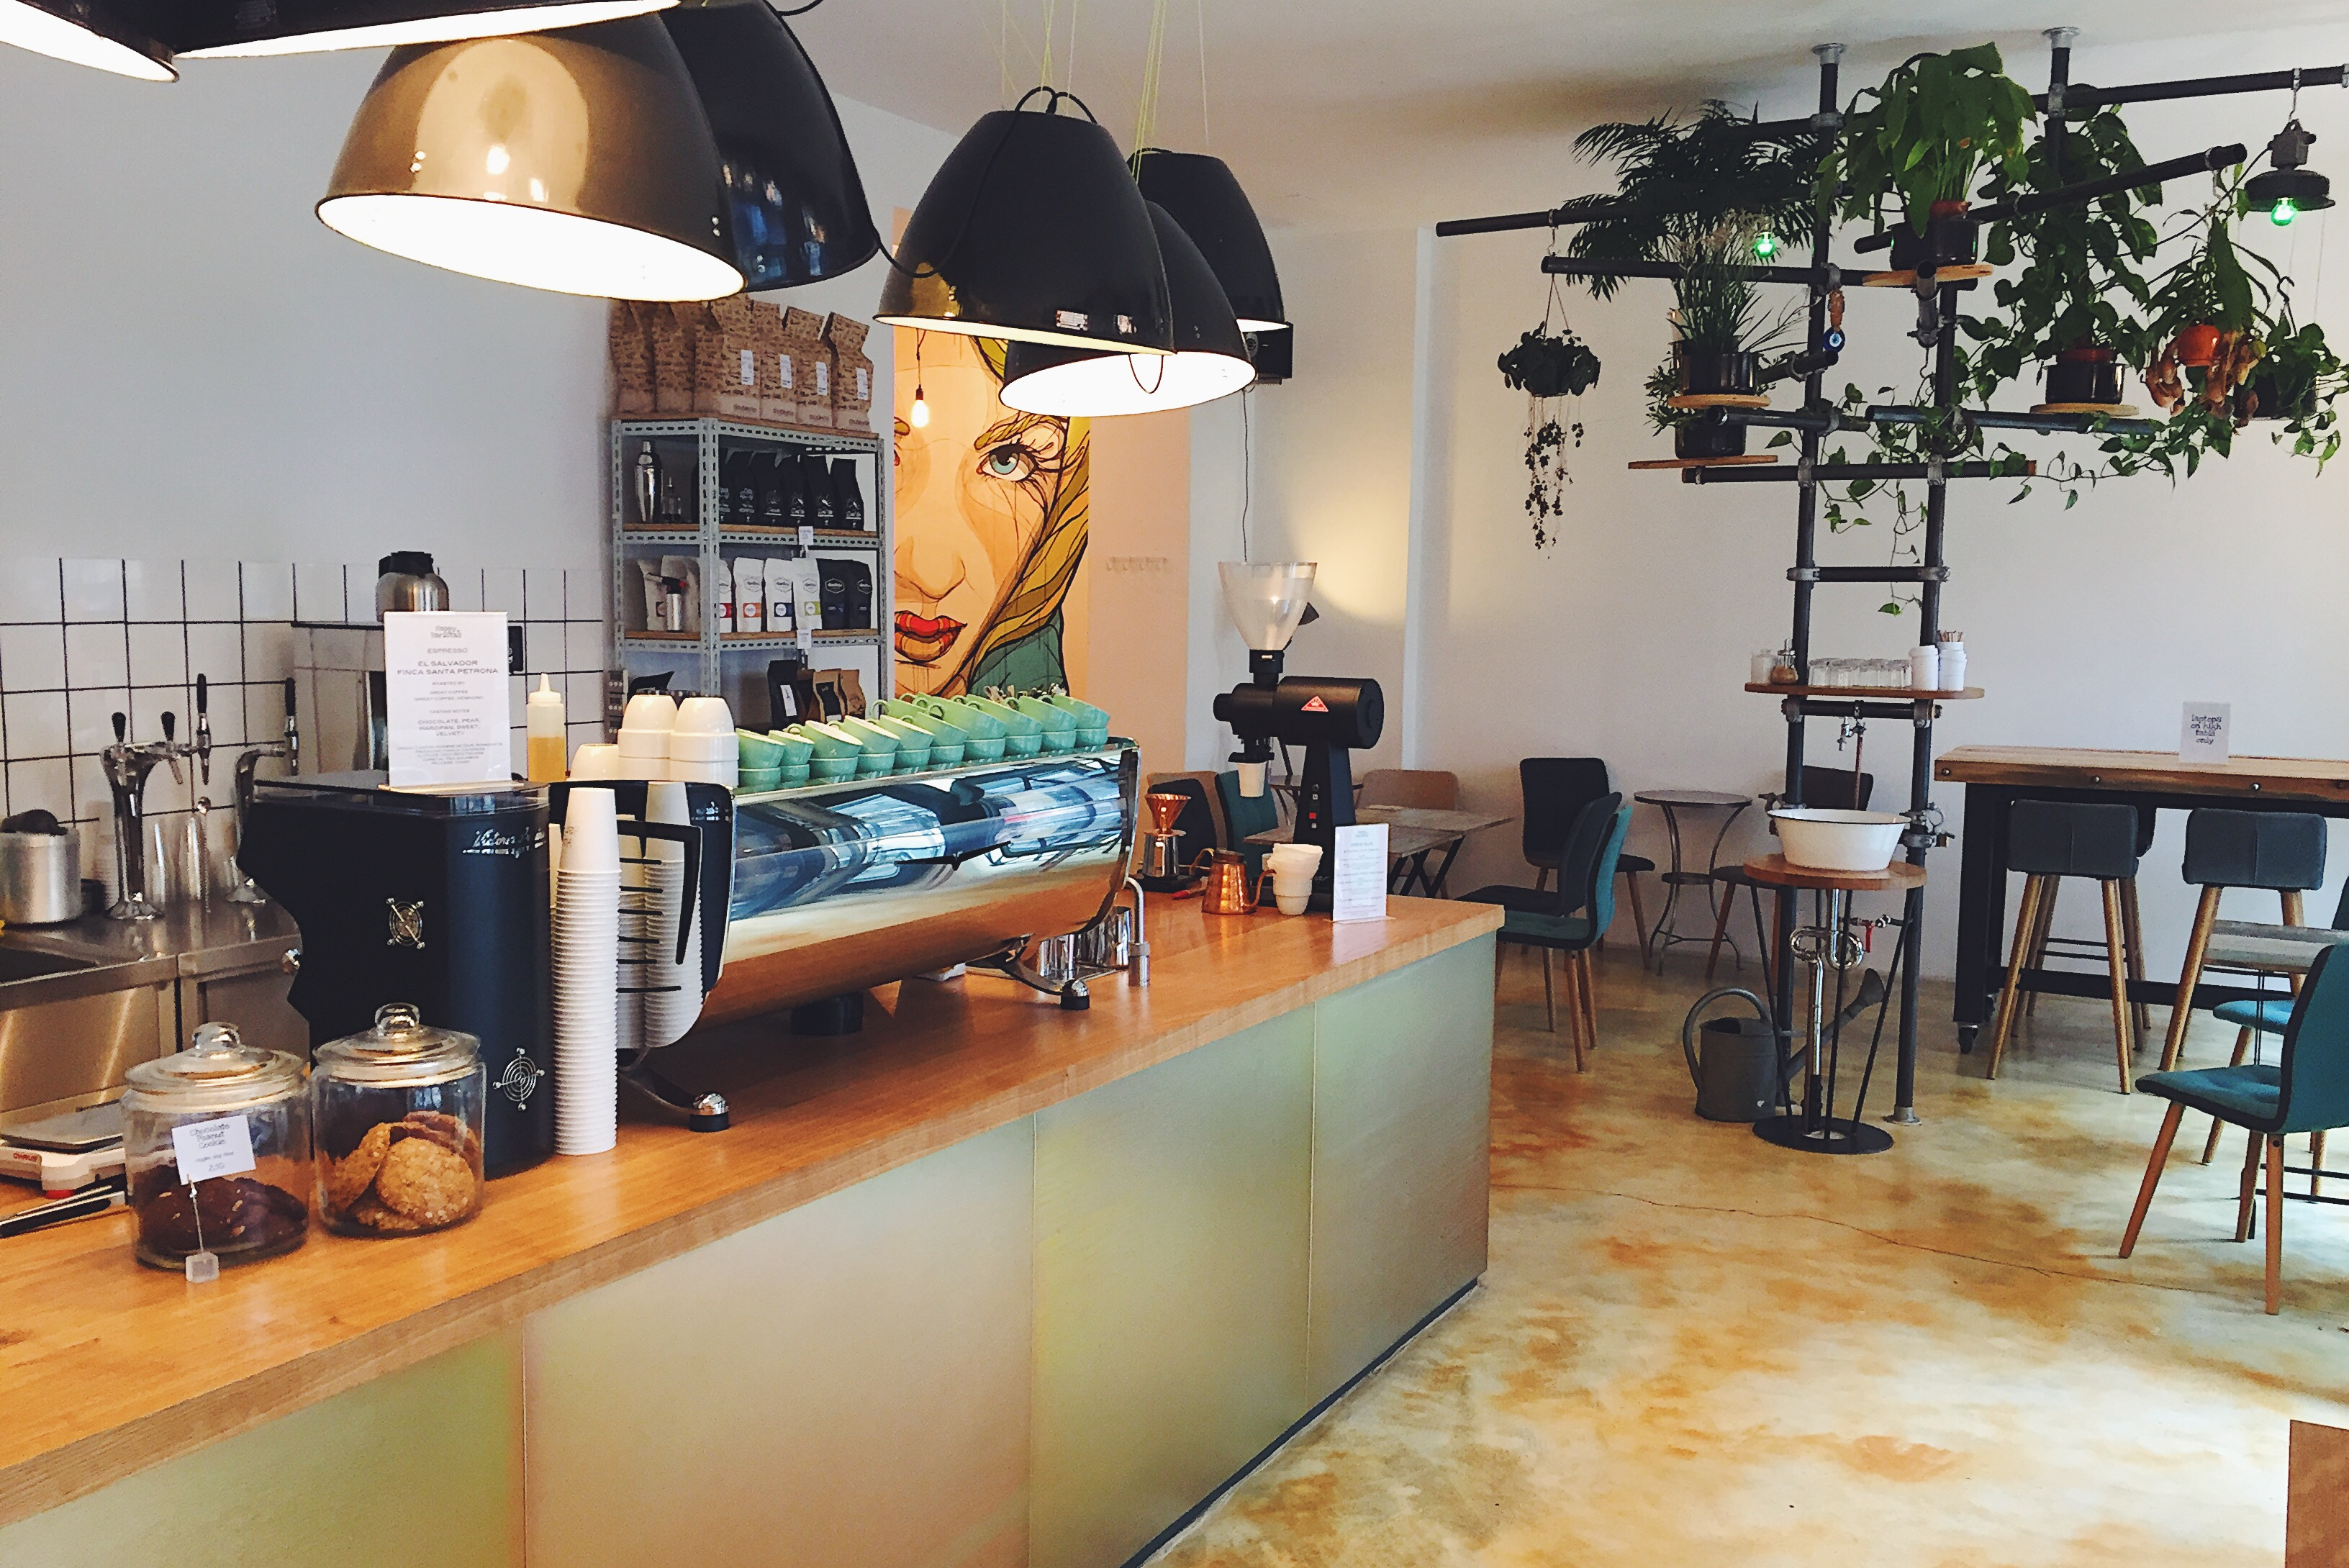 The Best Coffee Places in Friedrichshain